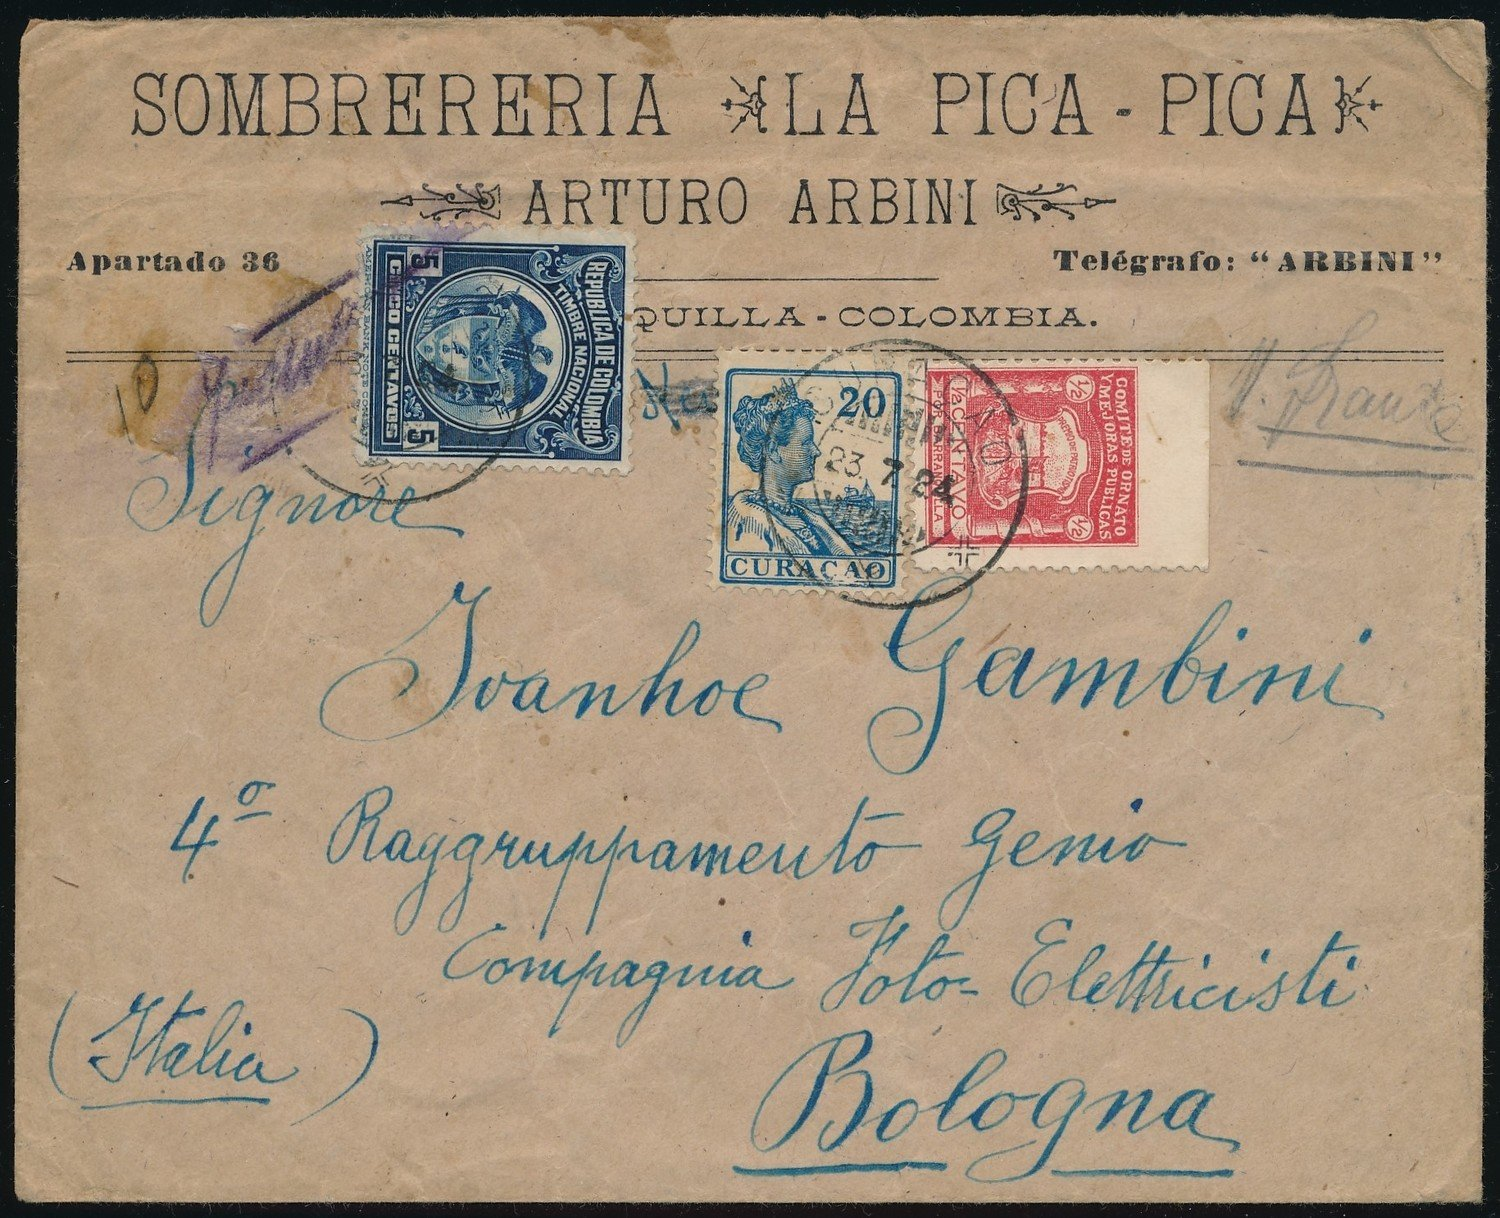 CURAÇAO cover 1924 from Colombia uprated to Italy